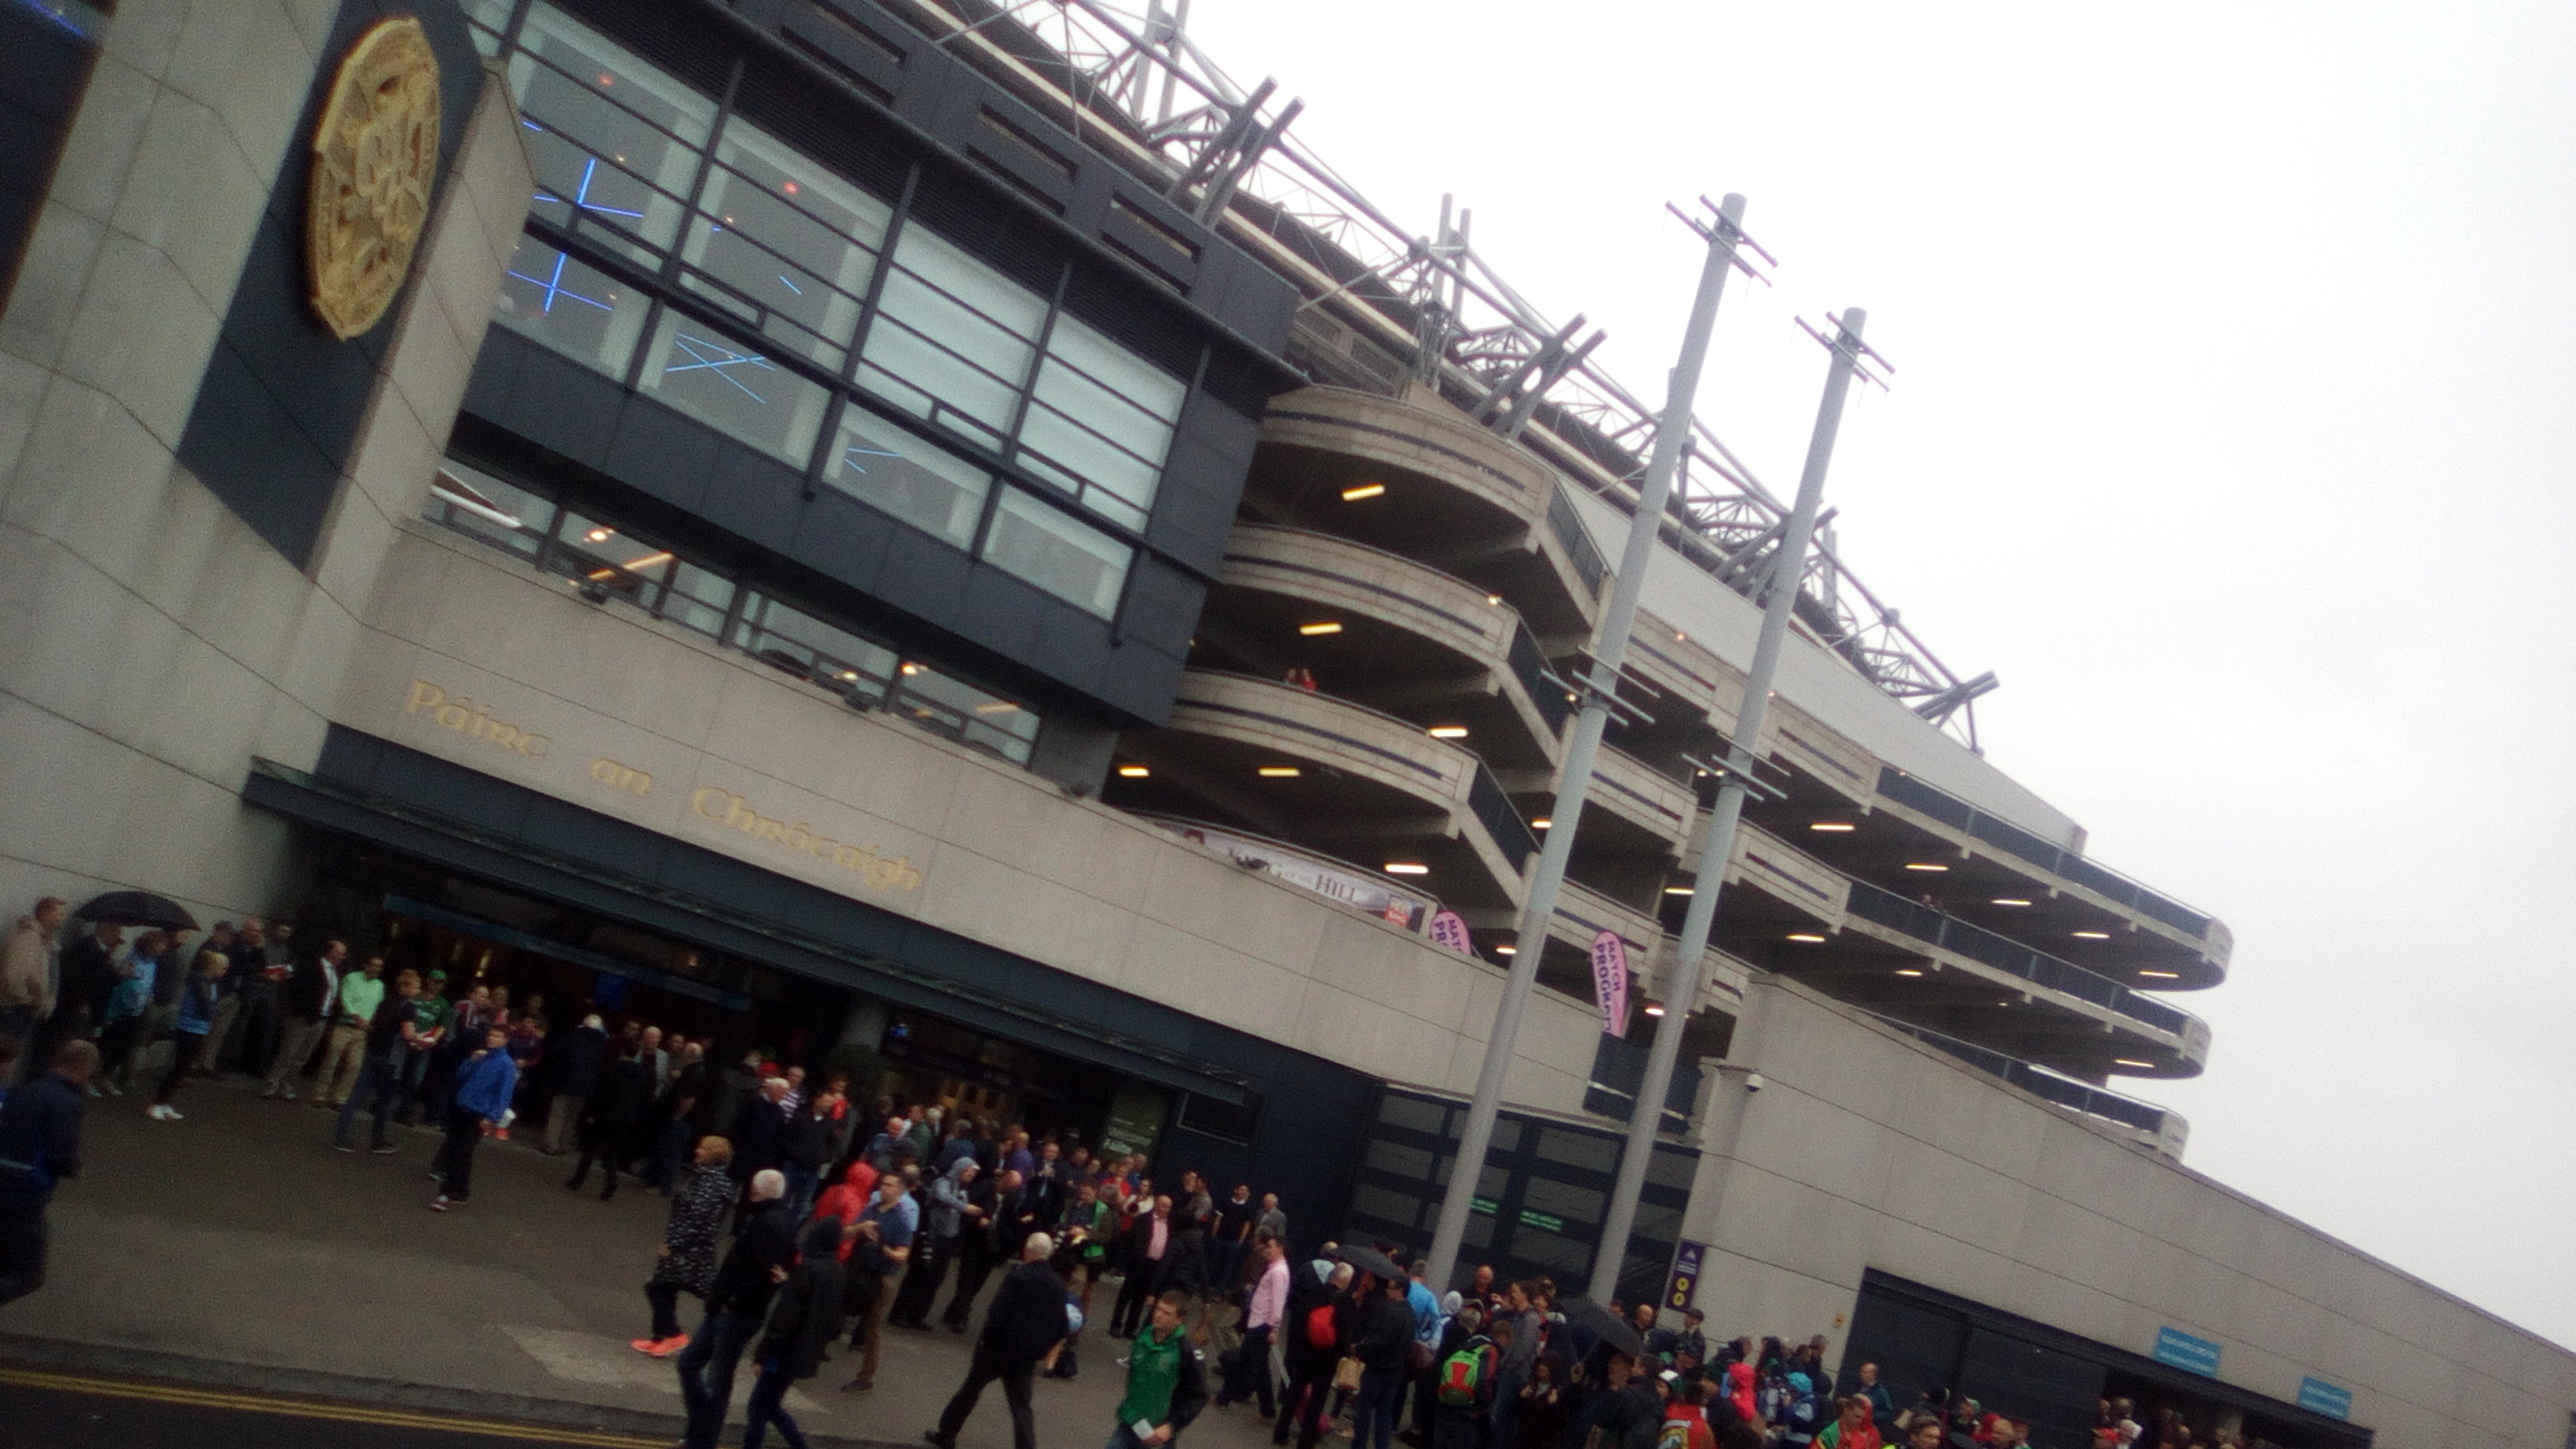 Croker locals asked about another concert